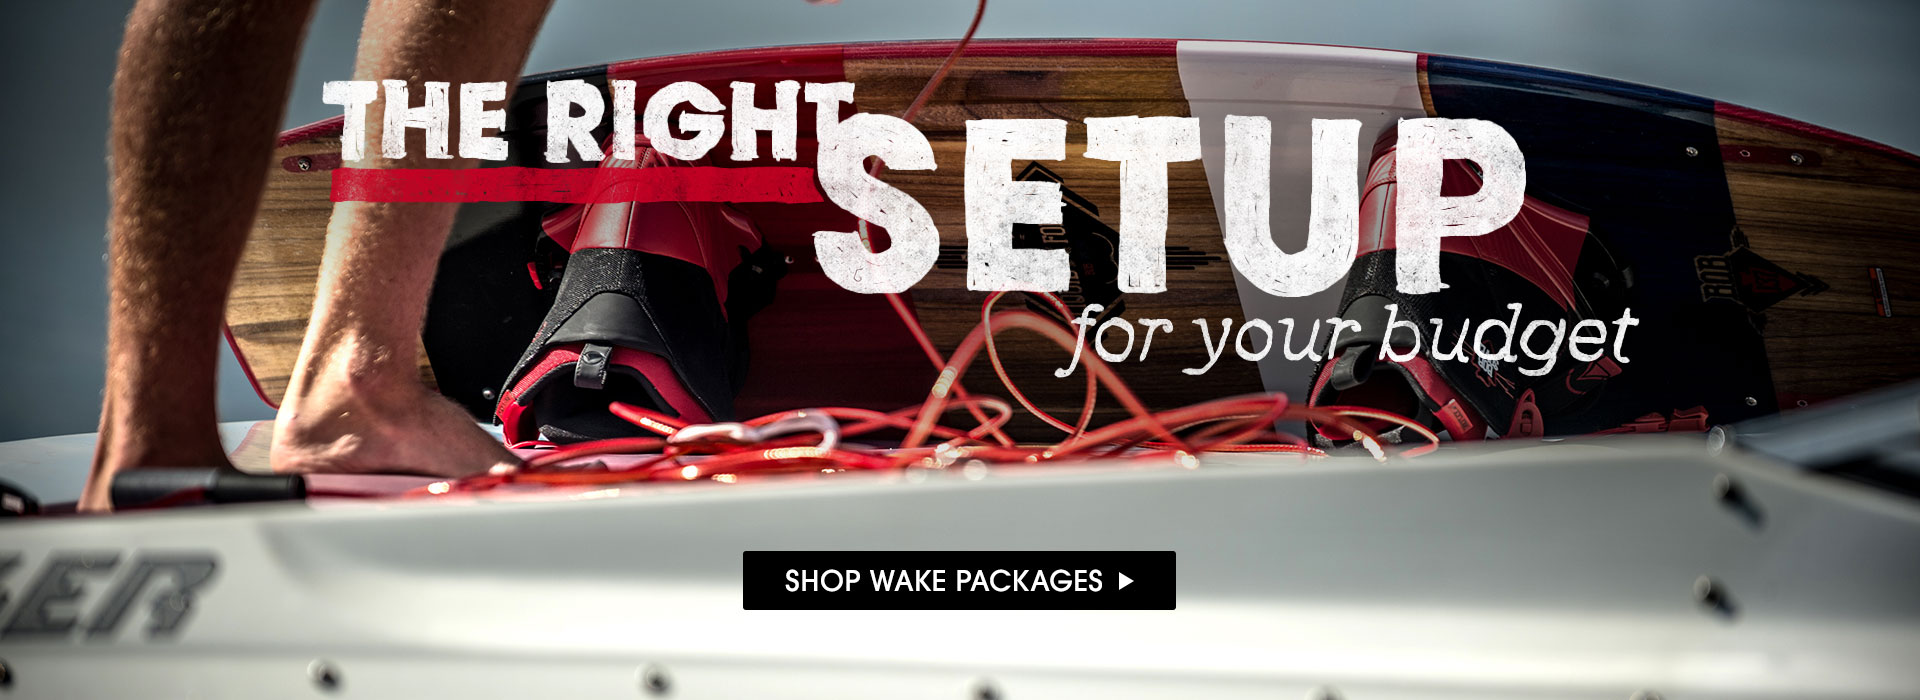 The Right Setup For Your Budget. Shop Wake Packages.